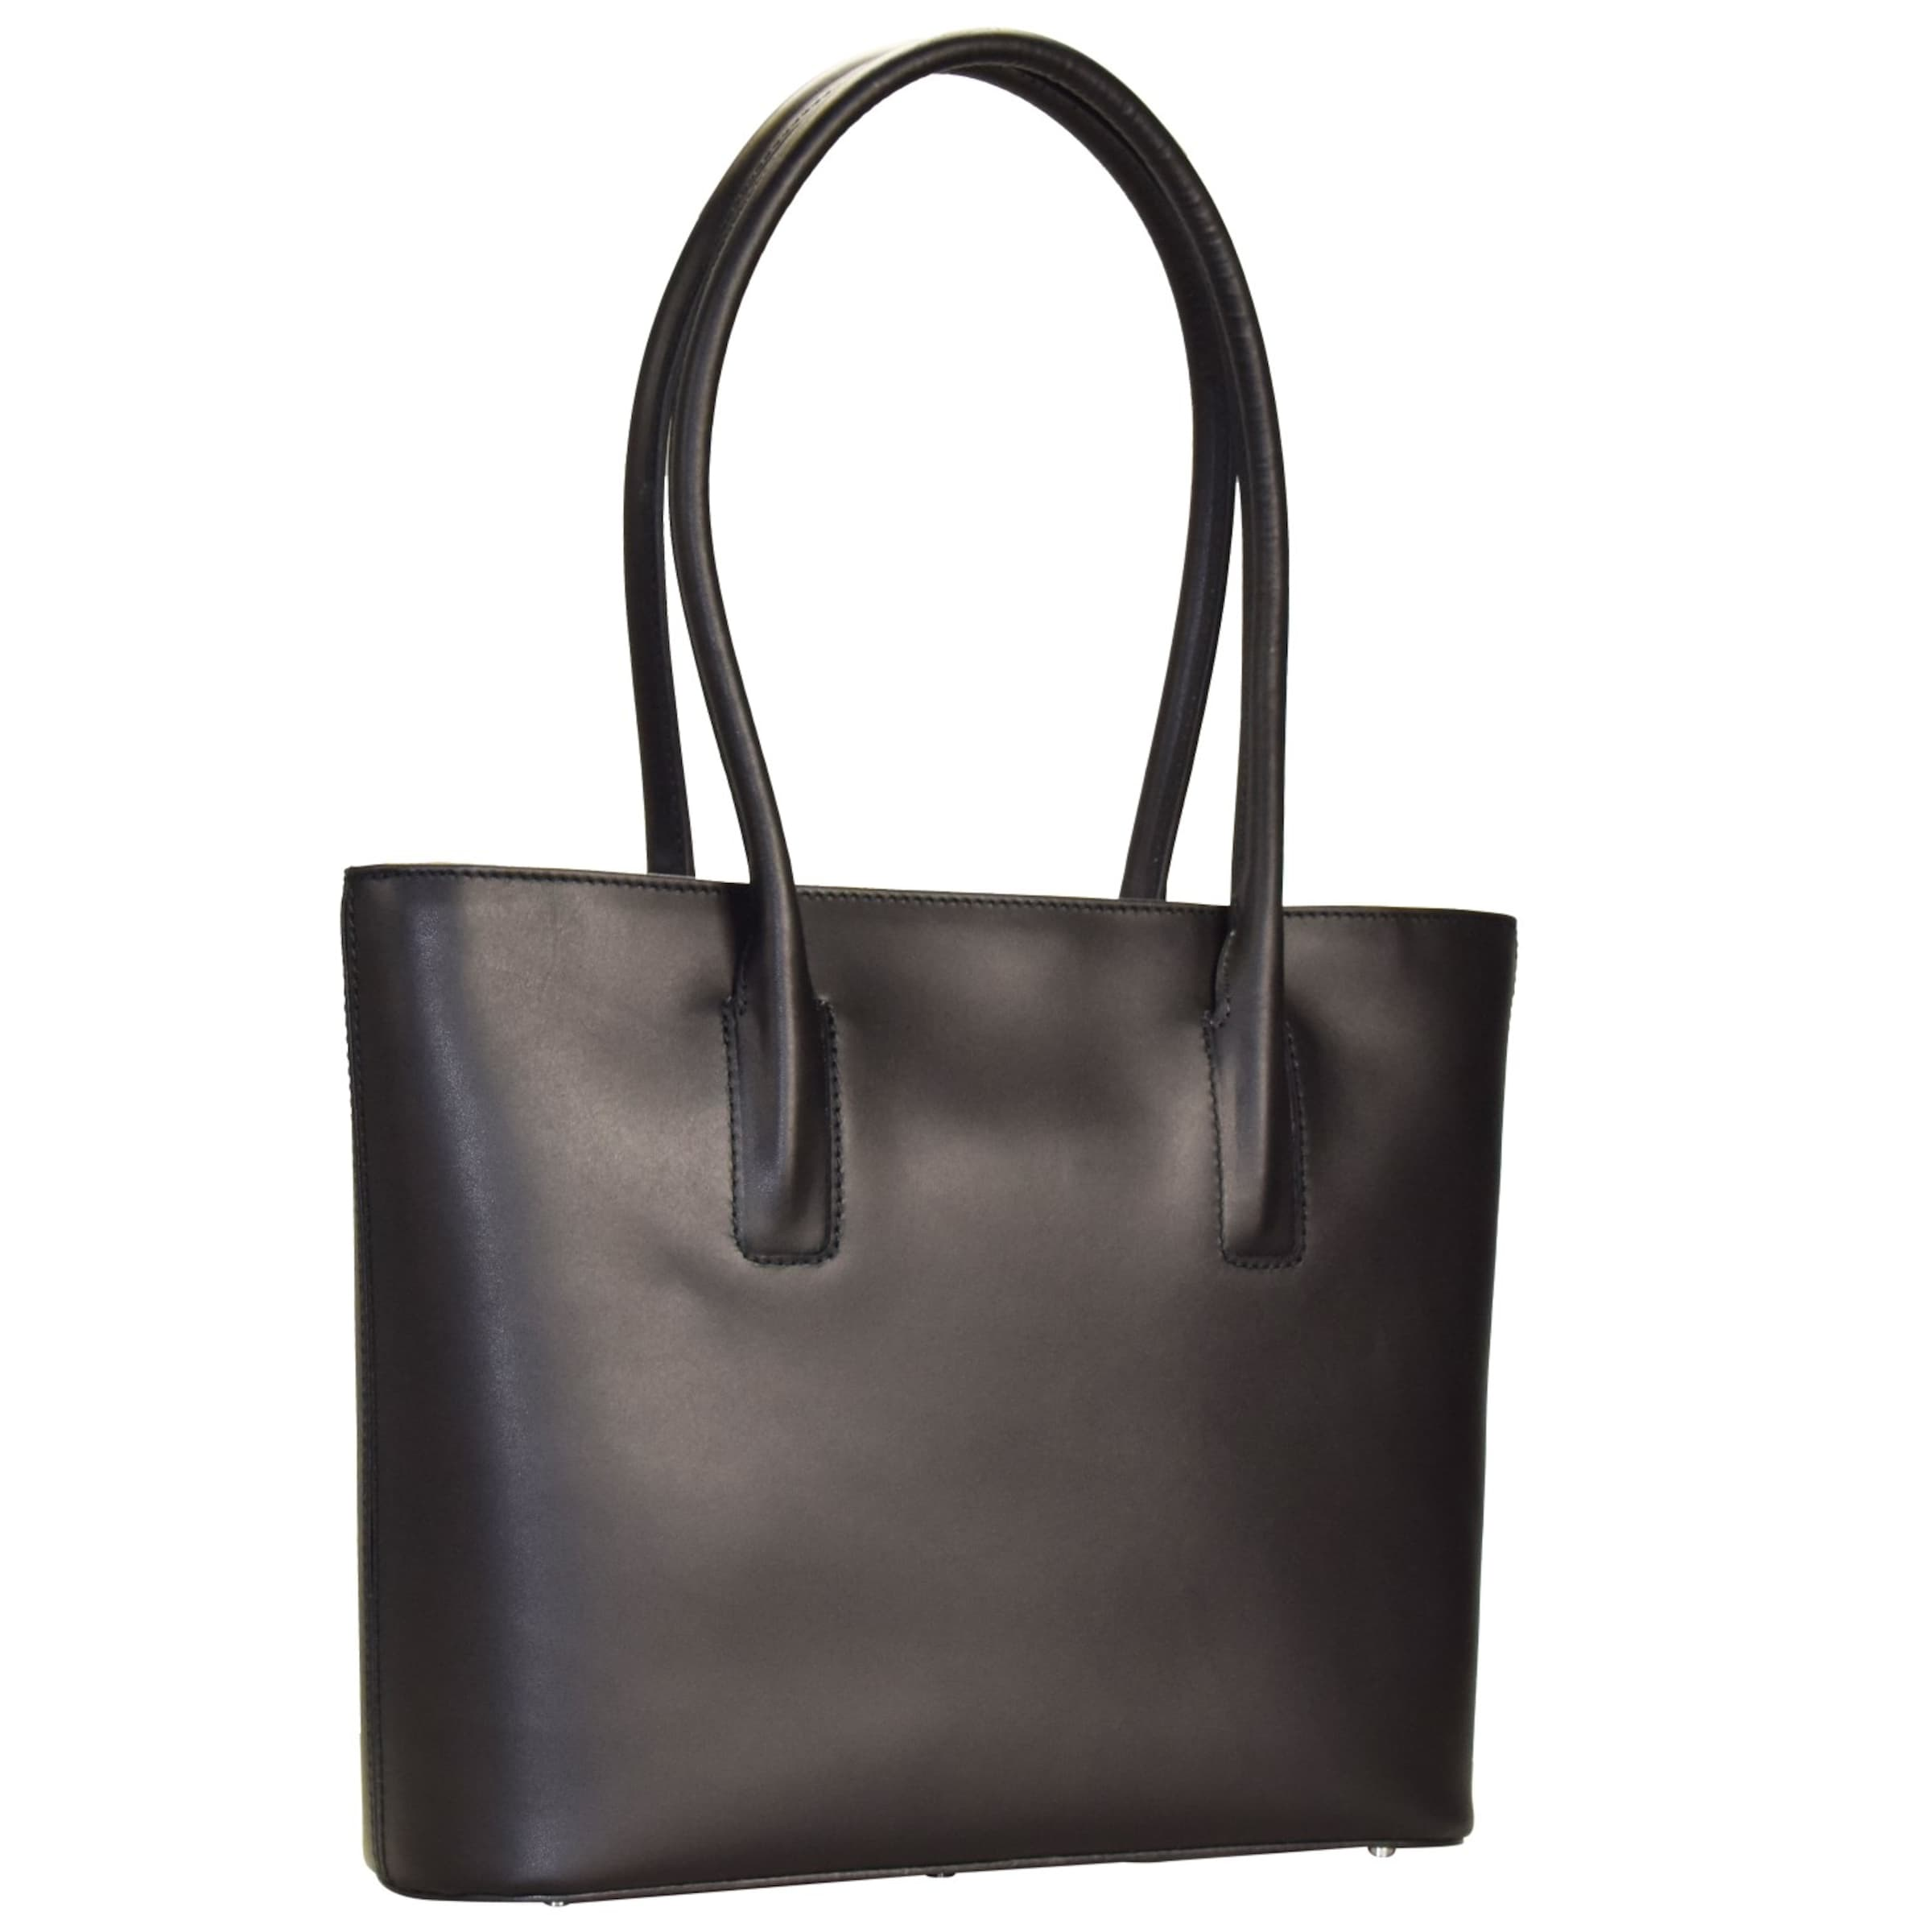 BREE BREE Schultertasche Cambridge cm Cambridge 34 Leder 9 r6n5rwq